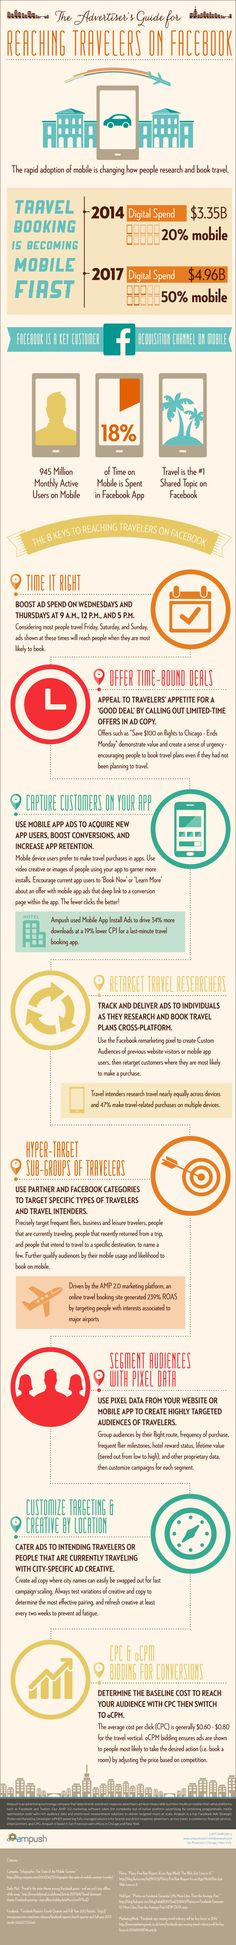 The Advertiser's Guide For Reaching Travelers on Facebook #Infographic #Facebook #Travelers